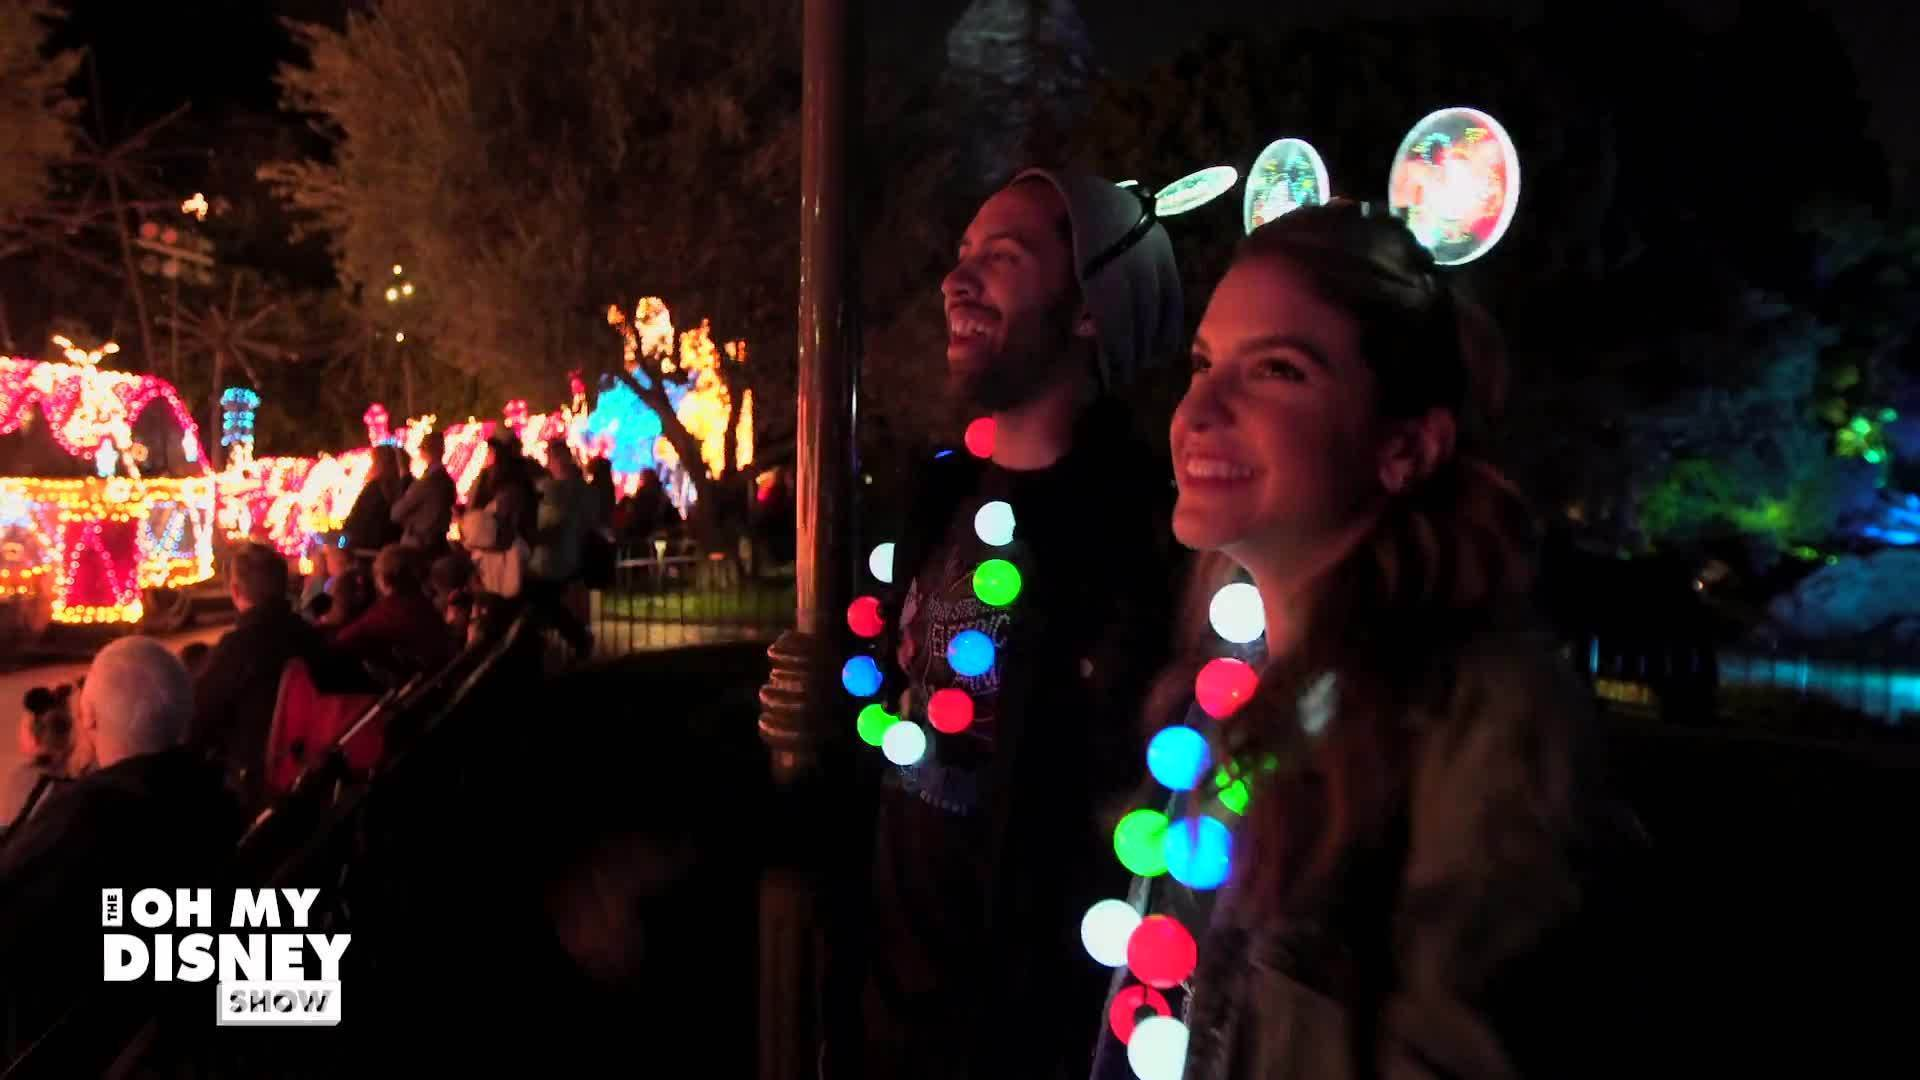 Main Street Electrical Parade Food Crawl at Disneyland | The Oh My Disney Show